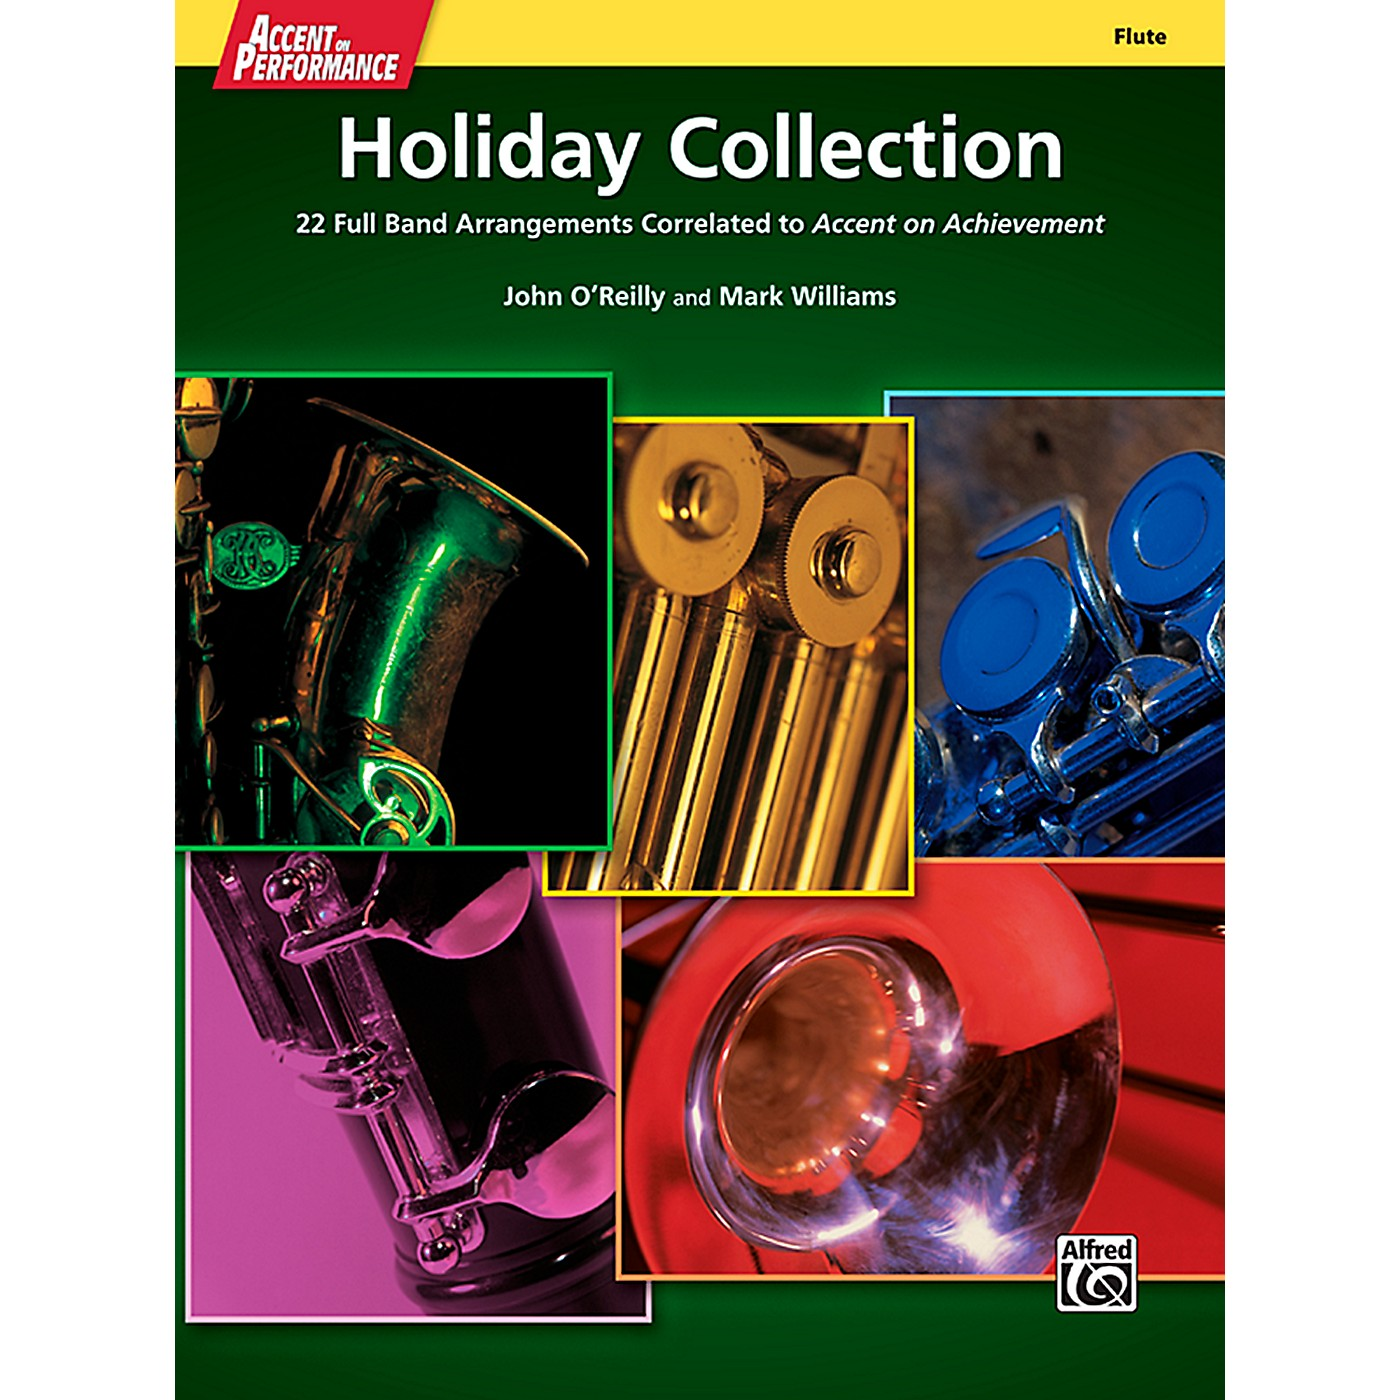 Alfred Accent on Performance Holiday Collection Flute Book thumbnail